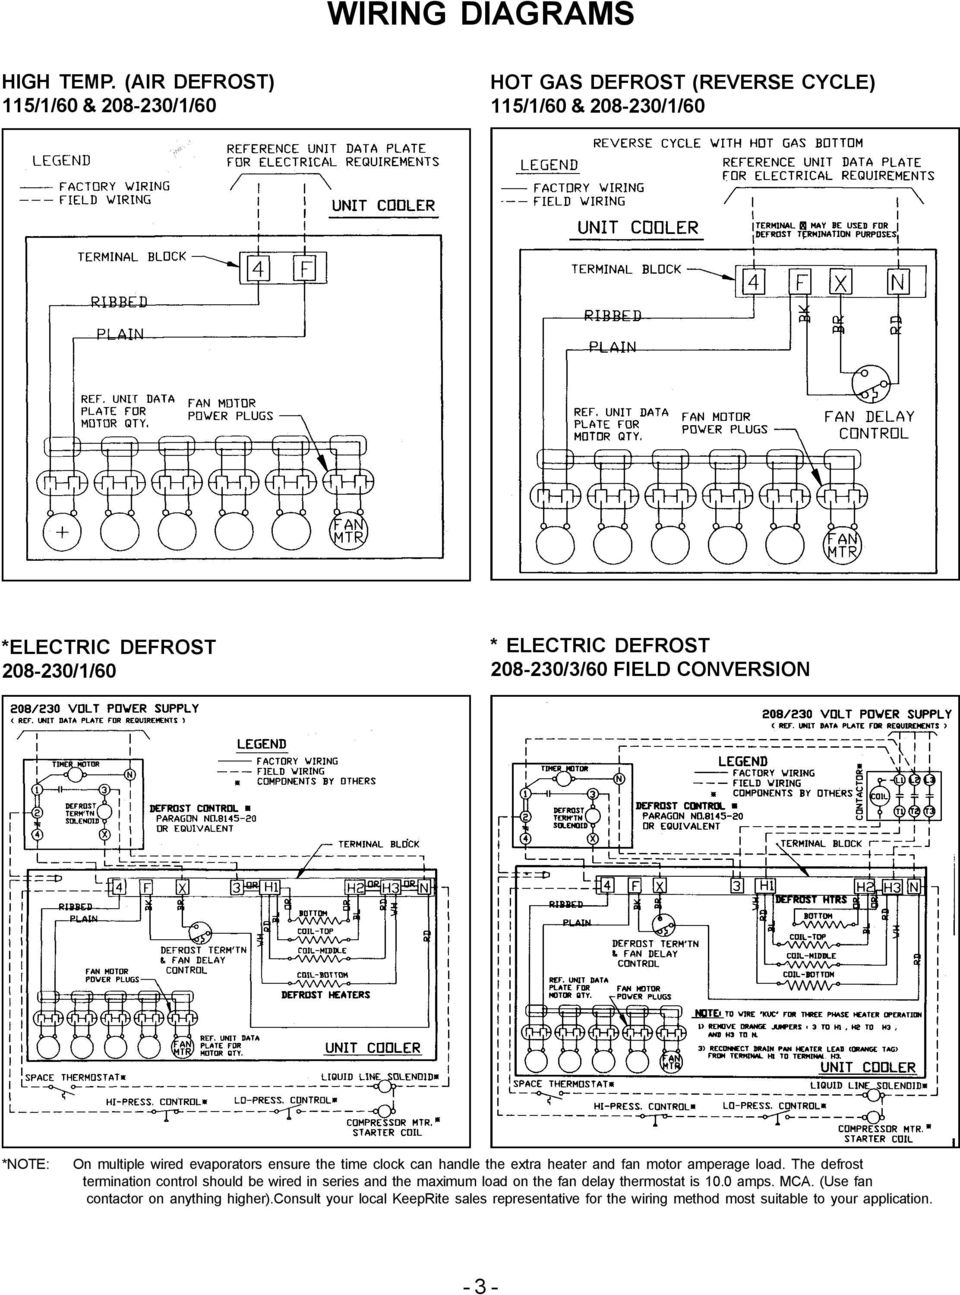 medium resolution of 208230 3 60 field conversion note on multiple wired evaporators ensure the